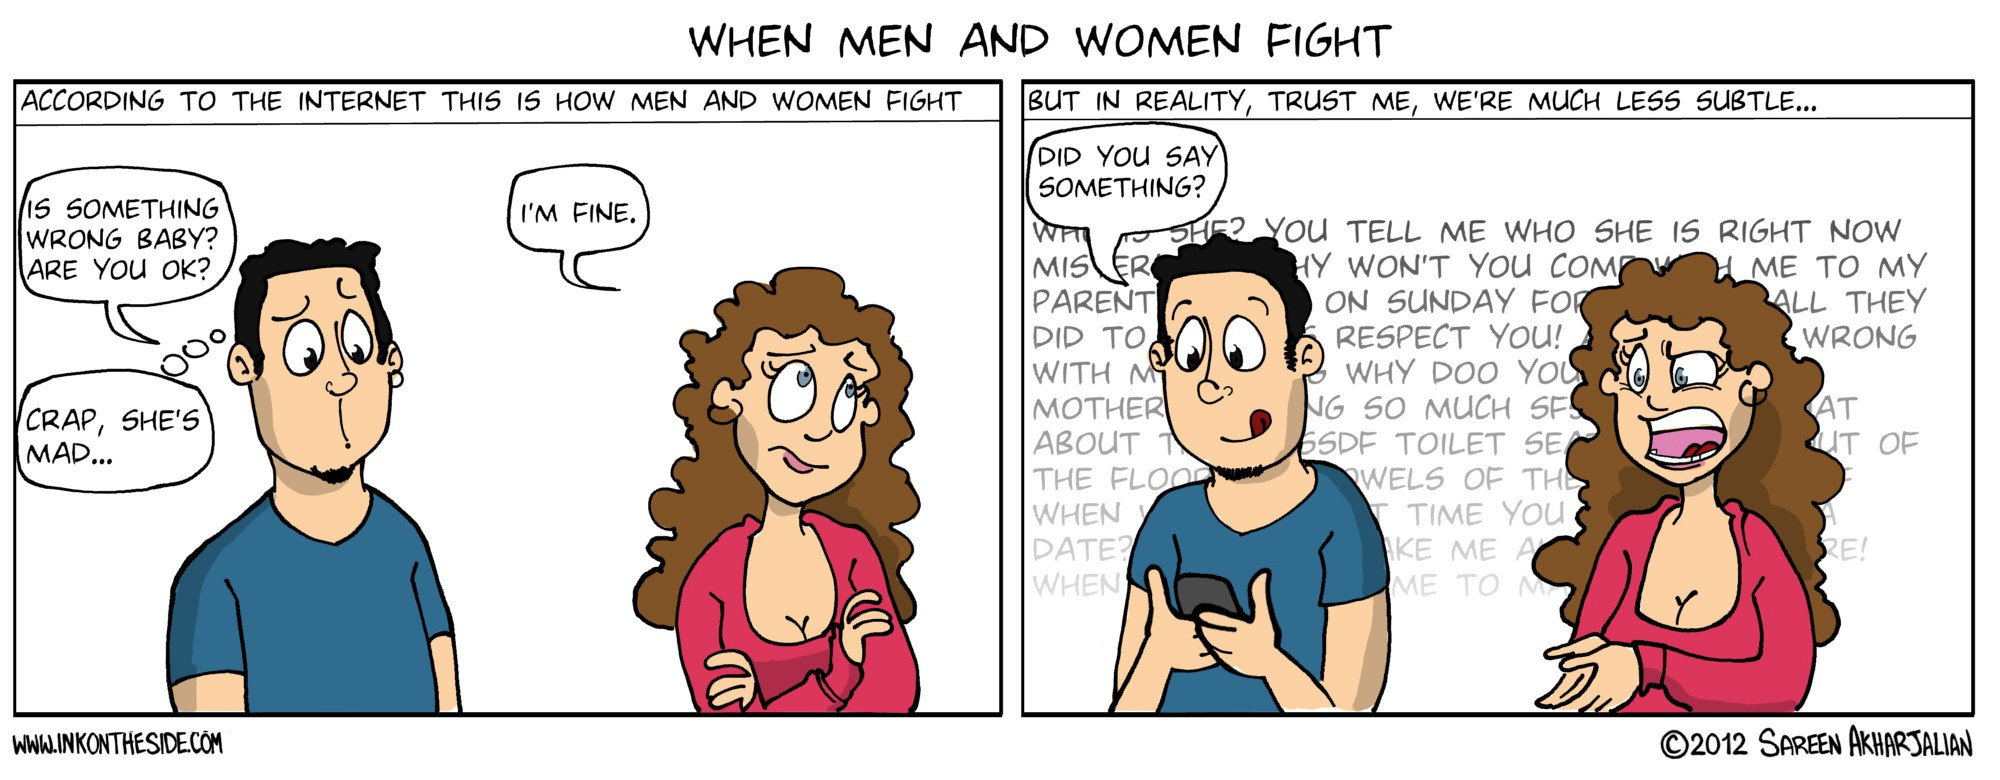 When Men and Women Fight